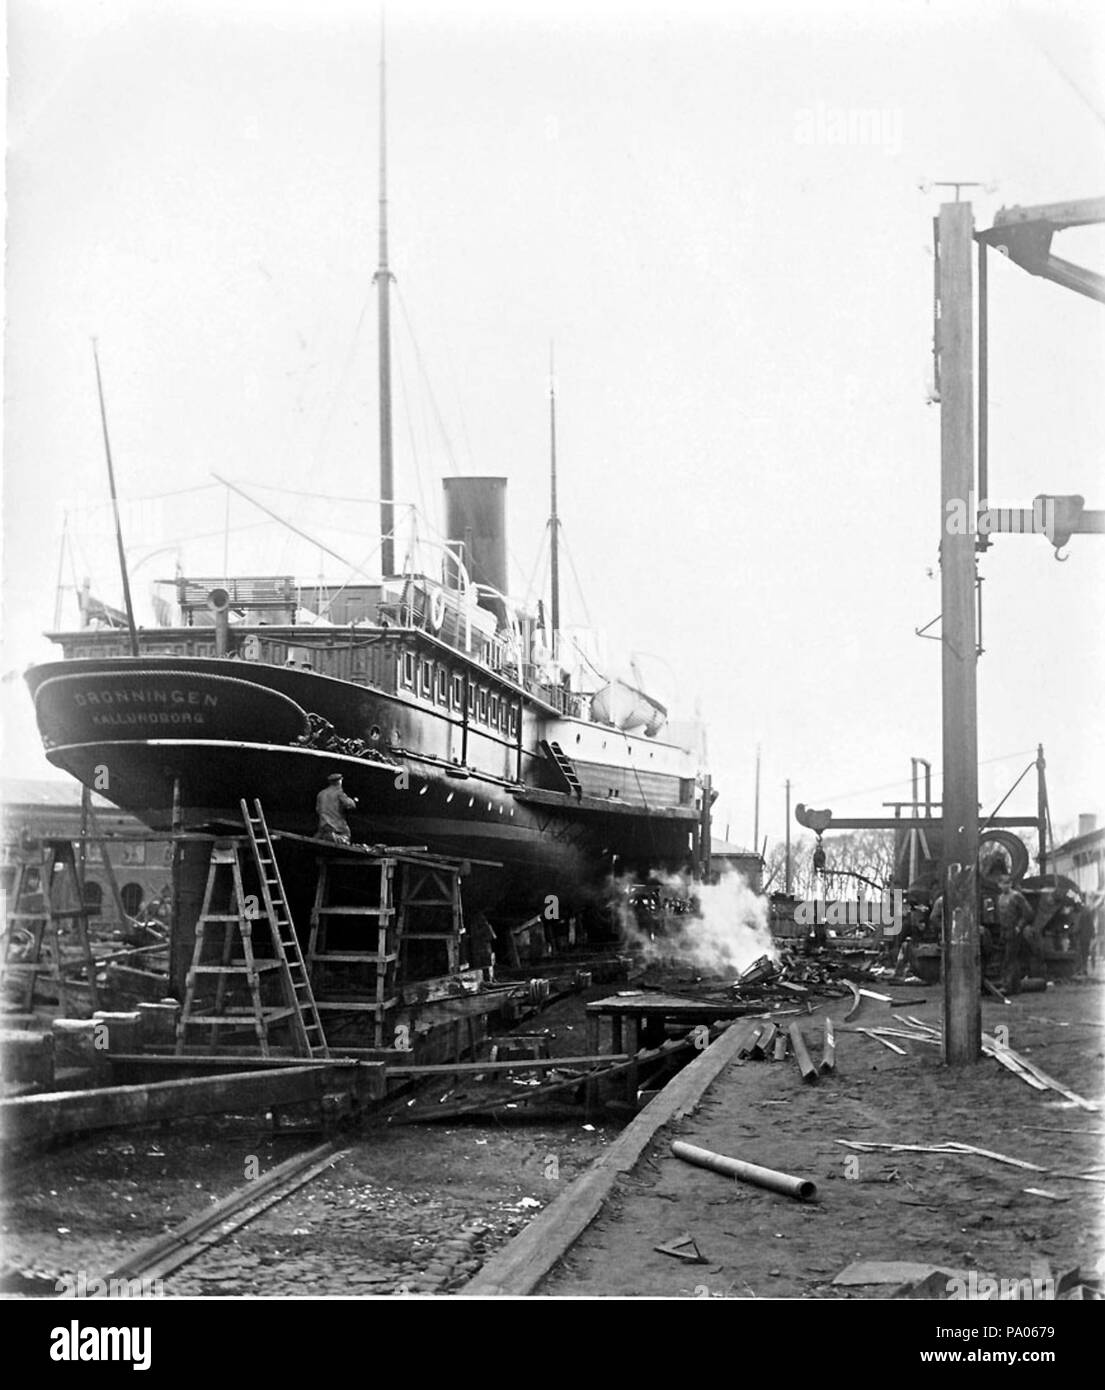 . The paddle steamer Dronningen at Elsinore Shipyard. The ship became Danish in 1888 and was wrecked in 1916. Photo property of Uffe Mortensen. circa 1900 592 Dronningen at Elsinore Shipyard - Stock Image